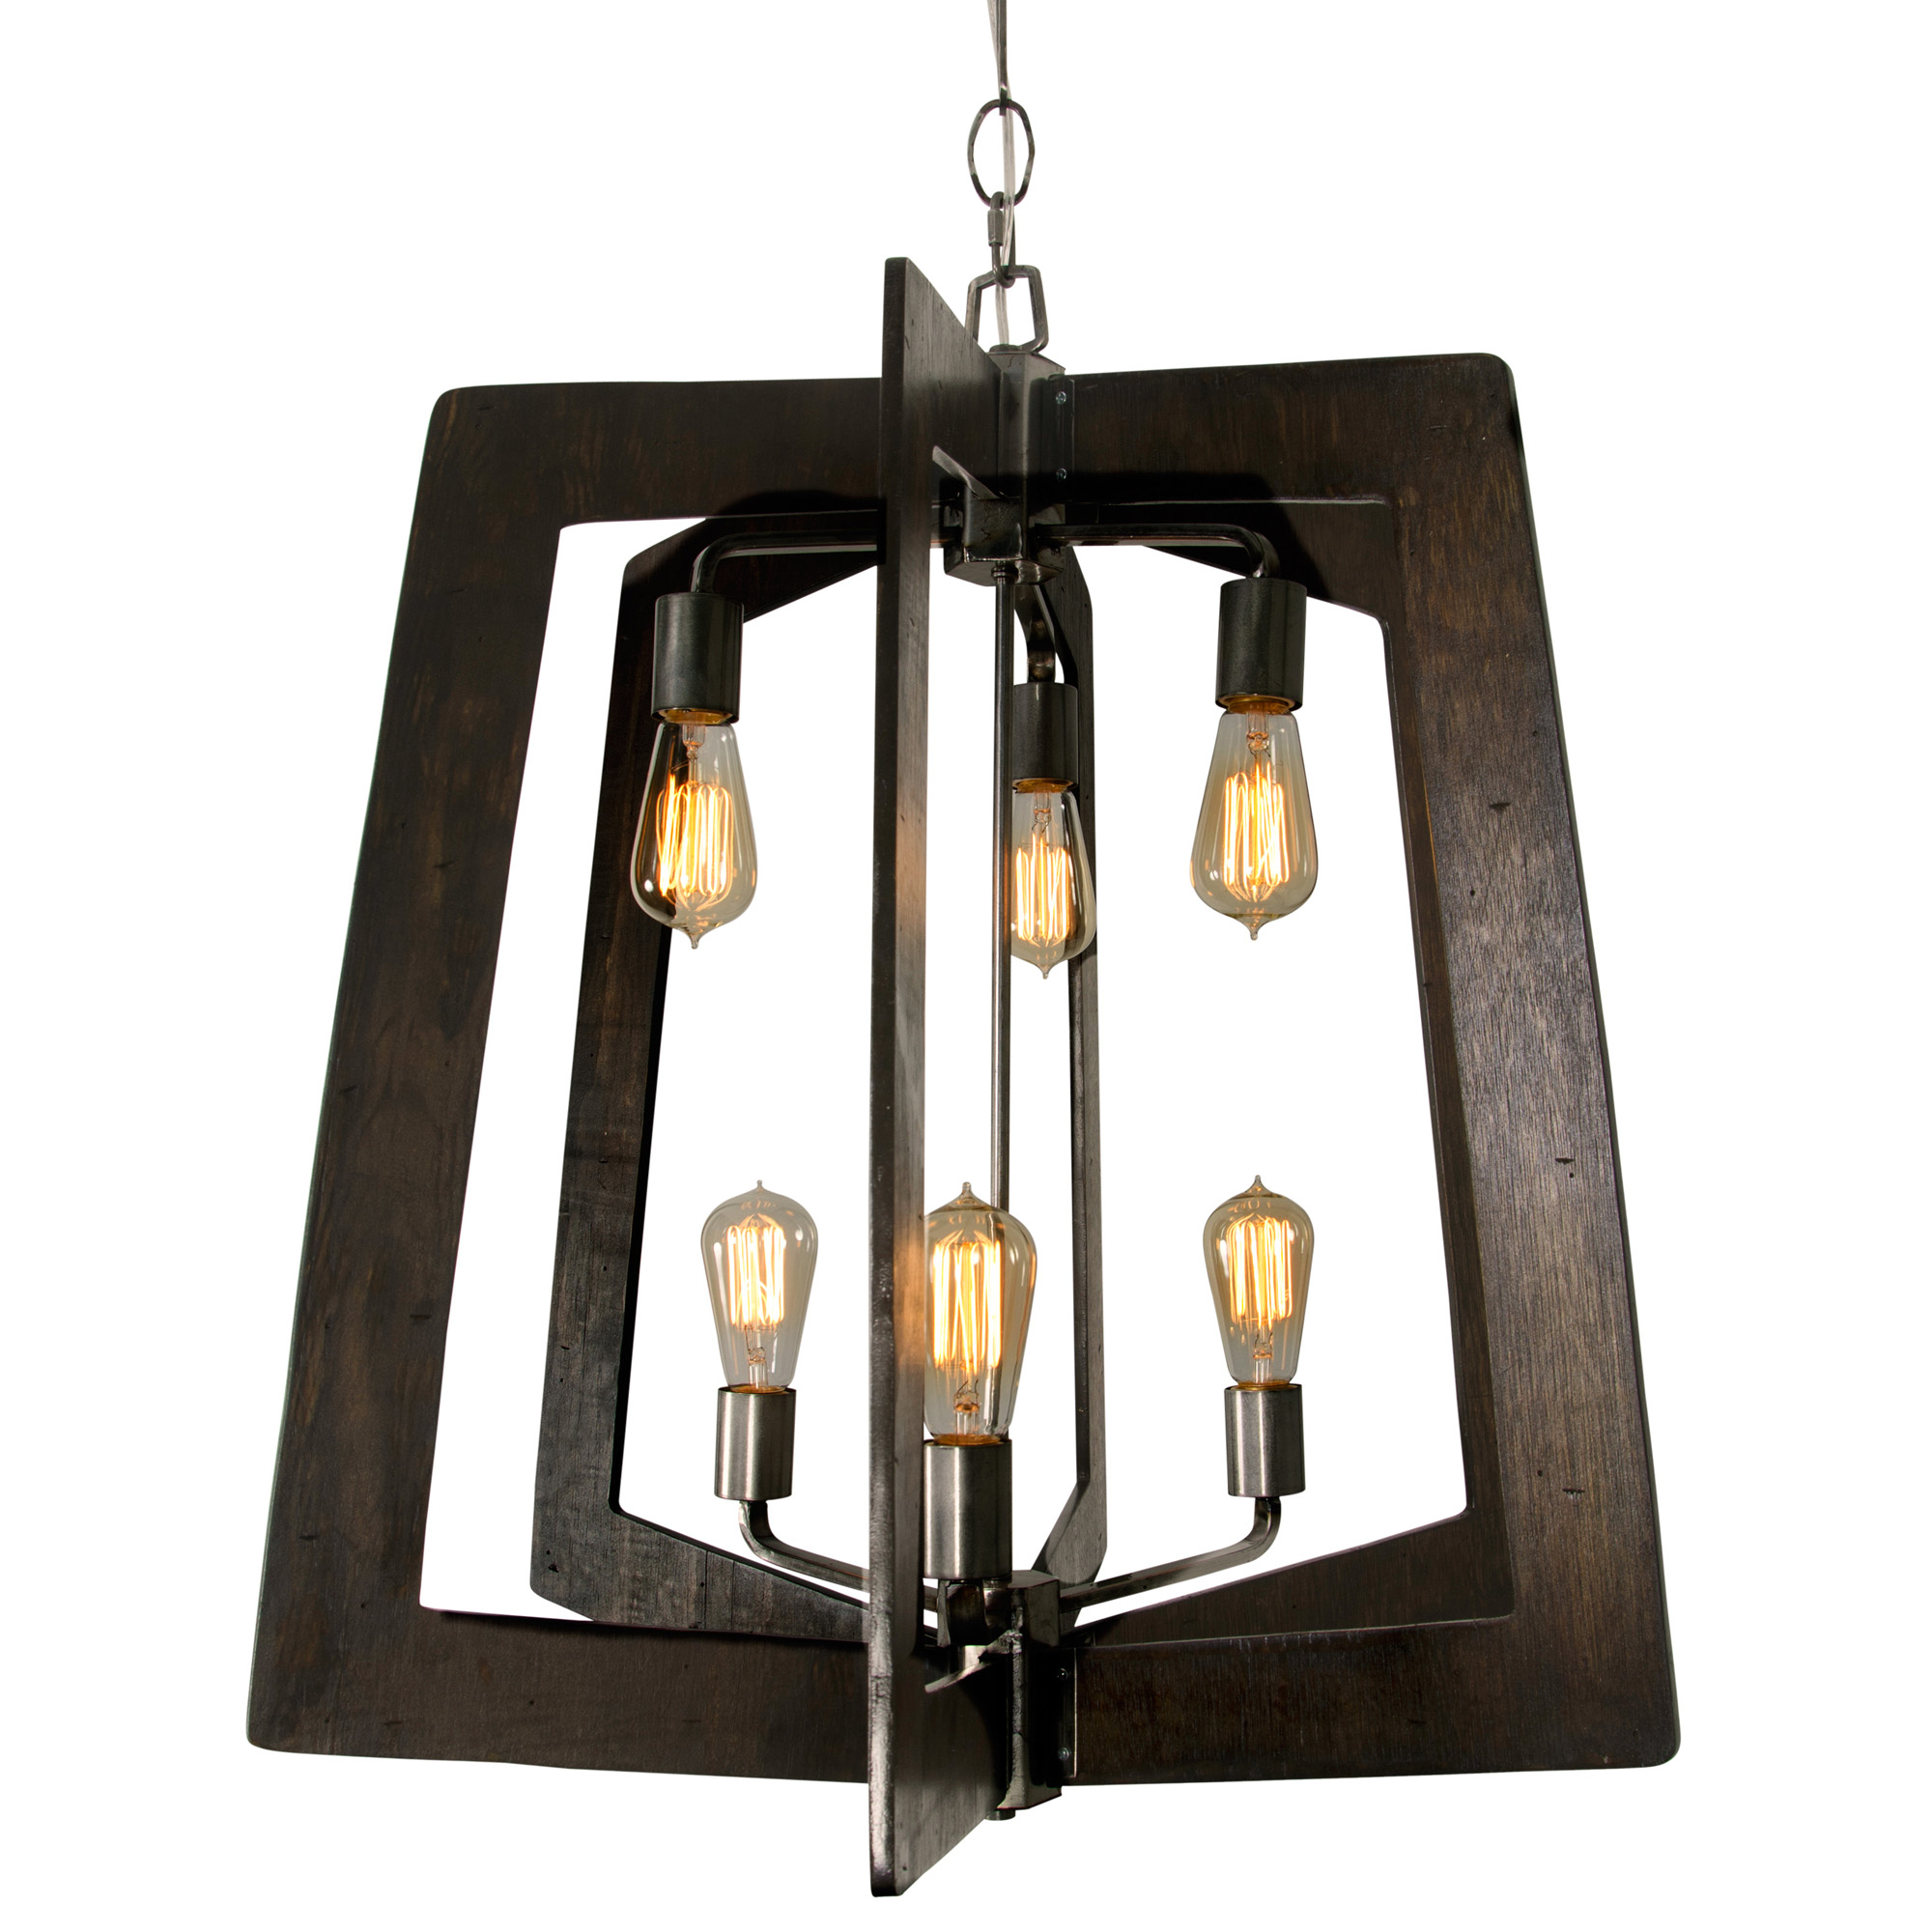 Varaluz - Lofty - 6 Light Foyer Chandelier - Steel Finish